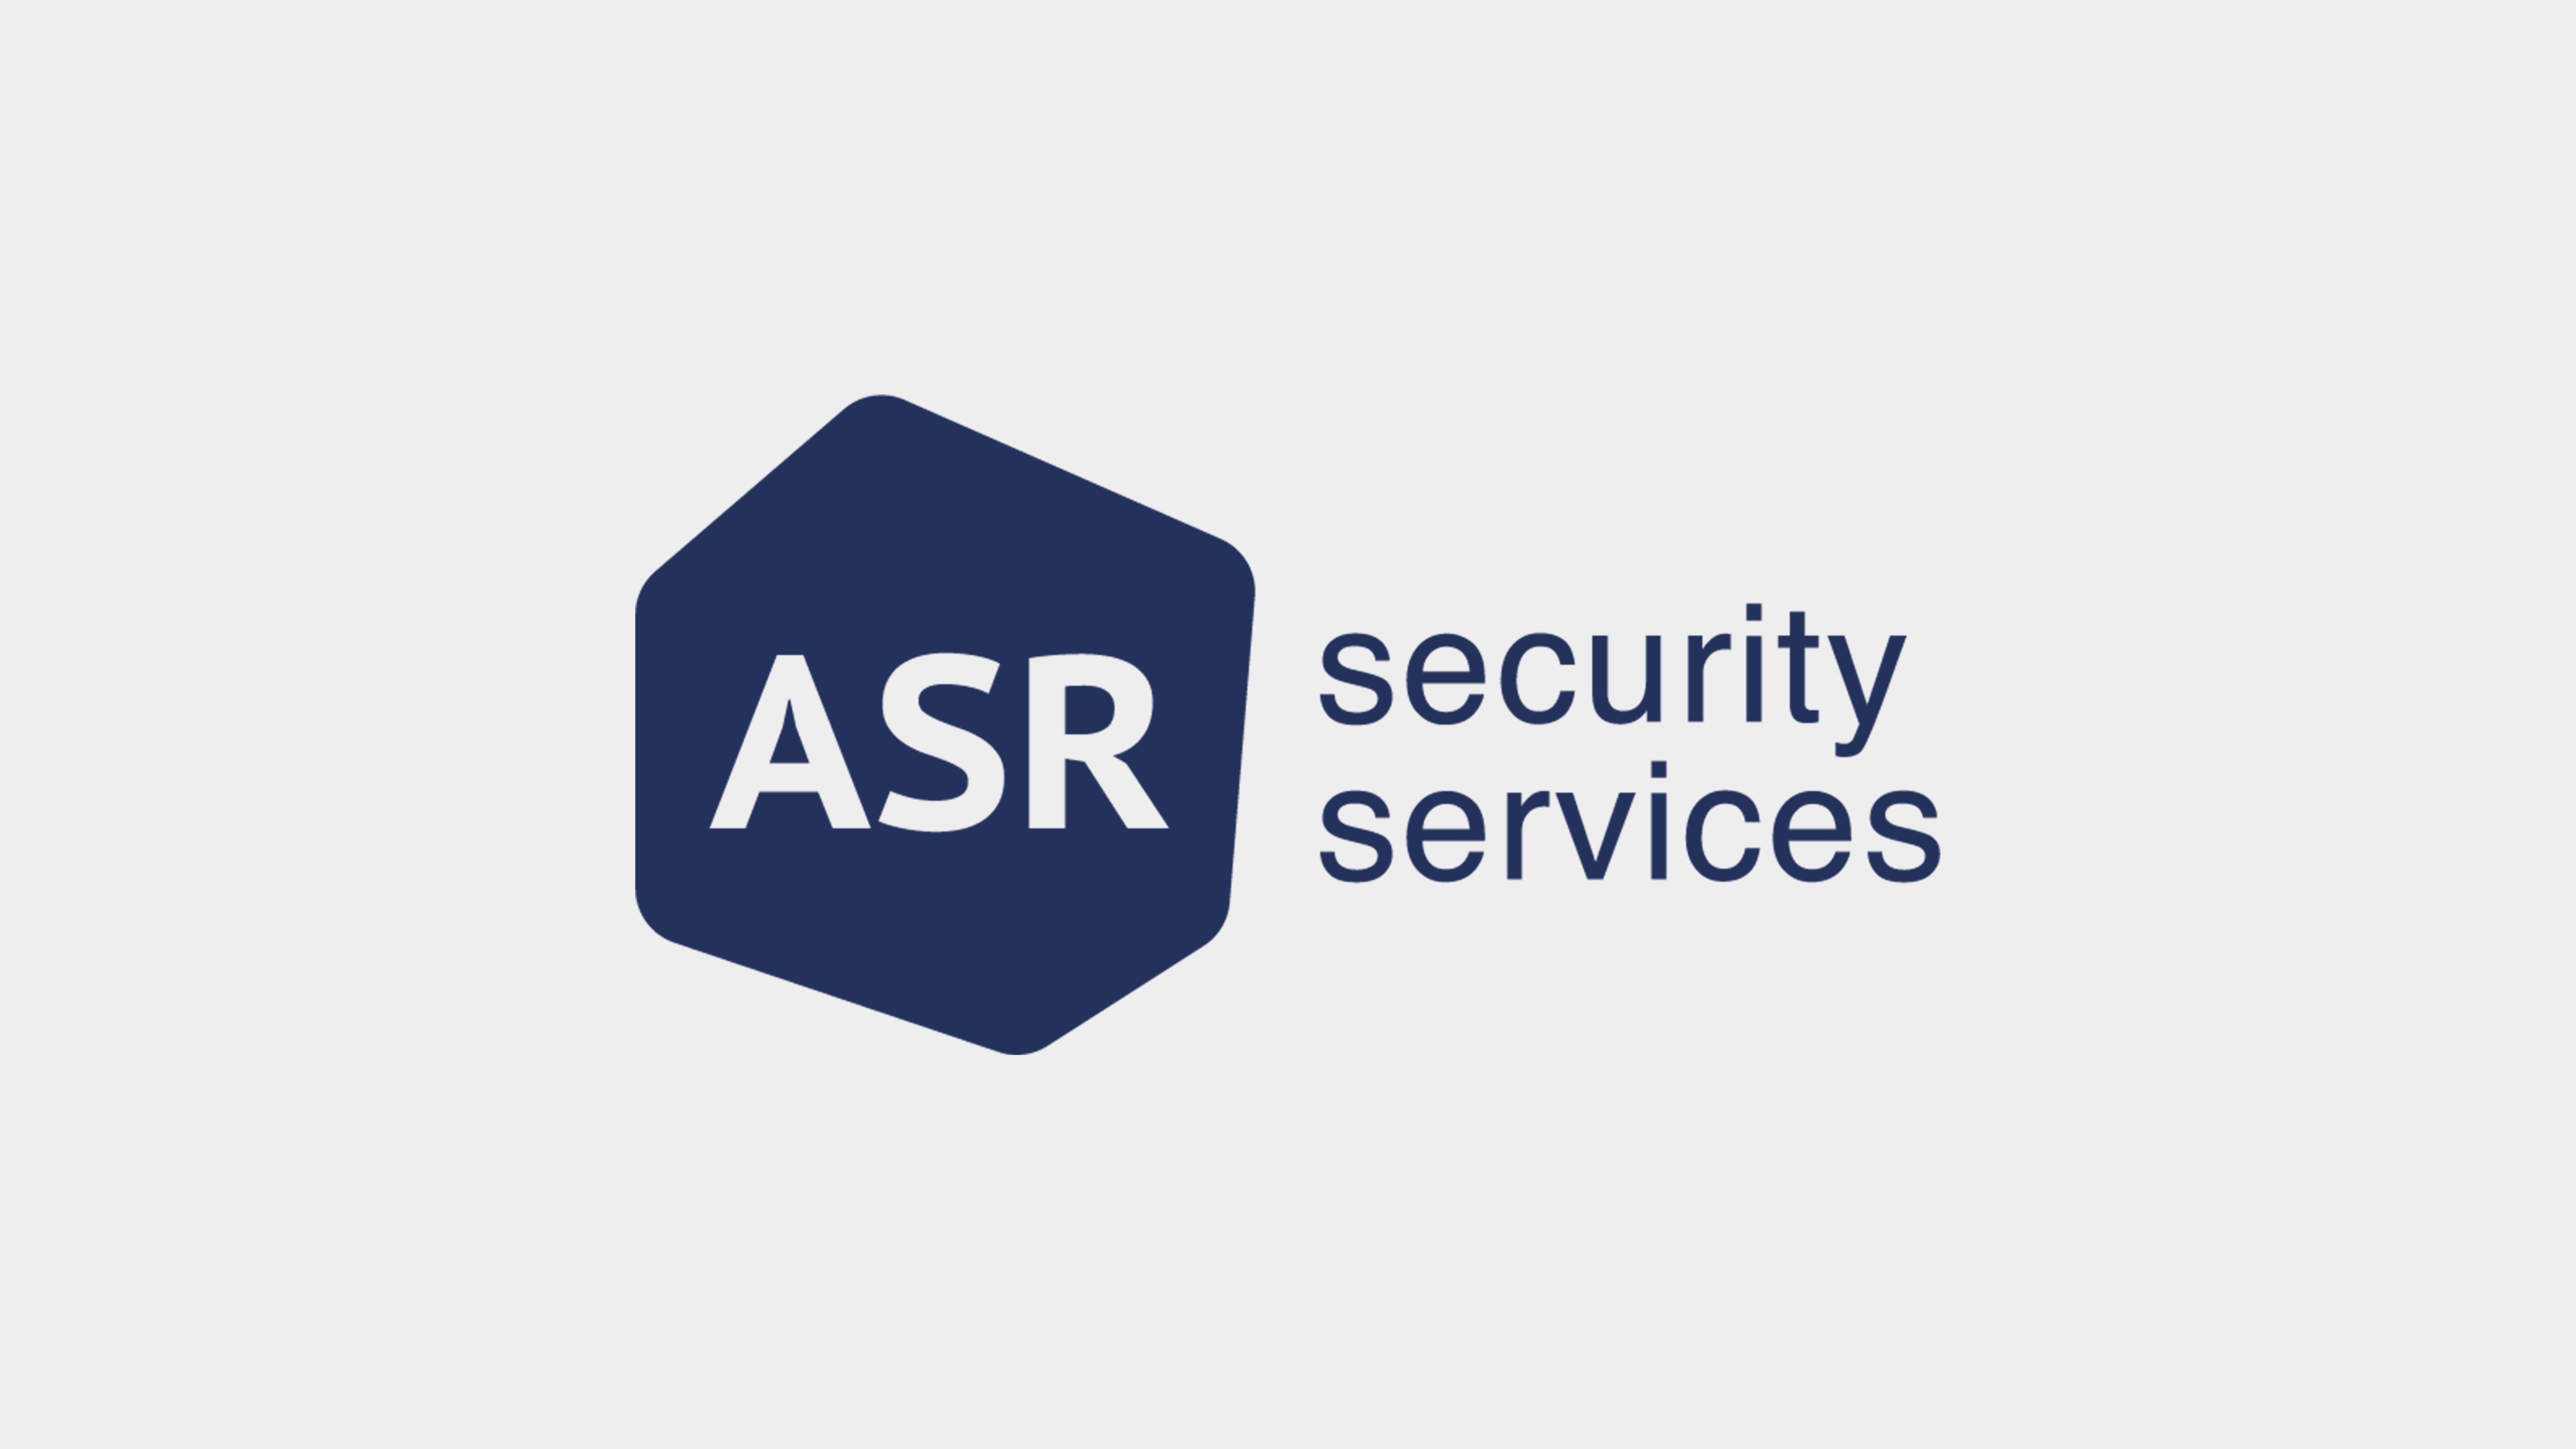 ASR-security-services-visual-identity-Studio-sont-businesscards